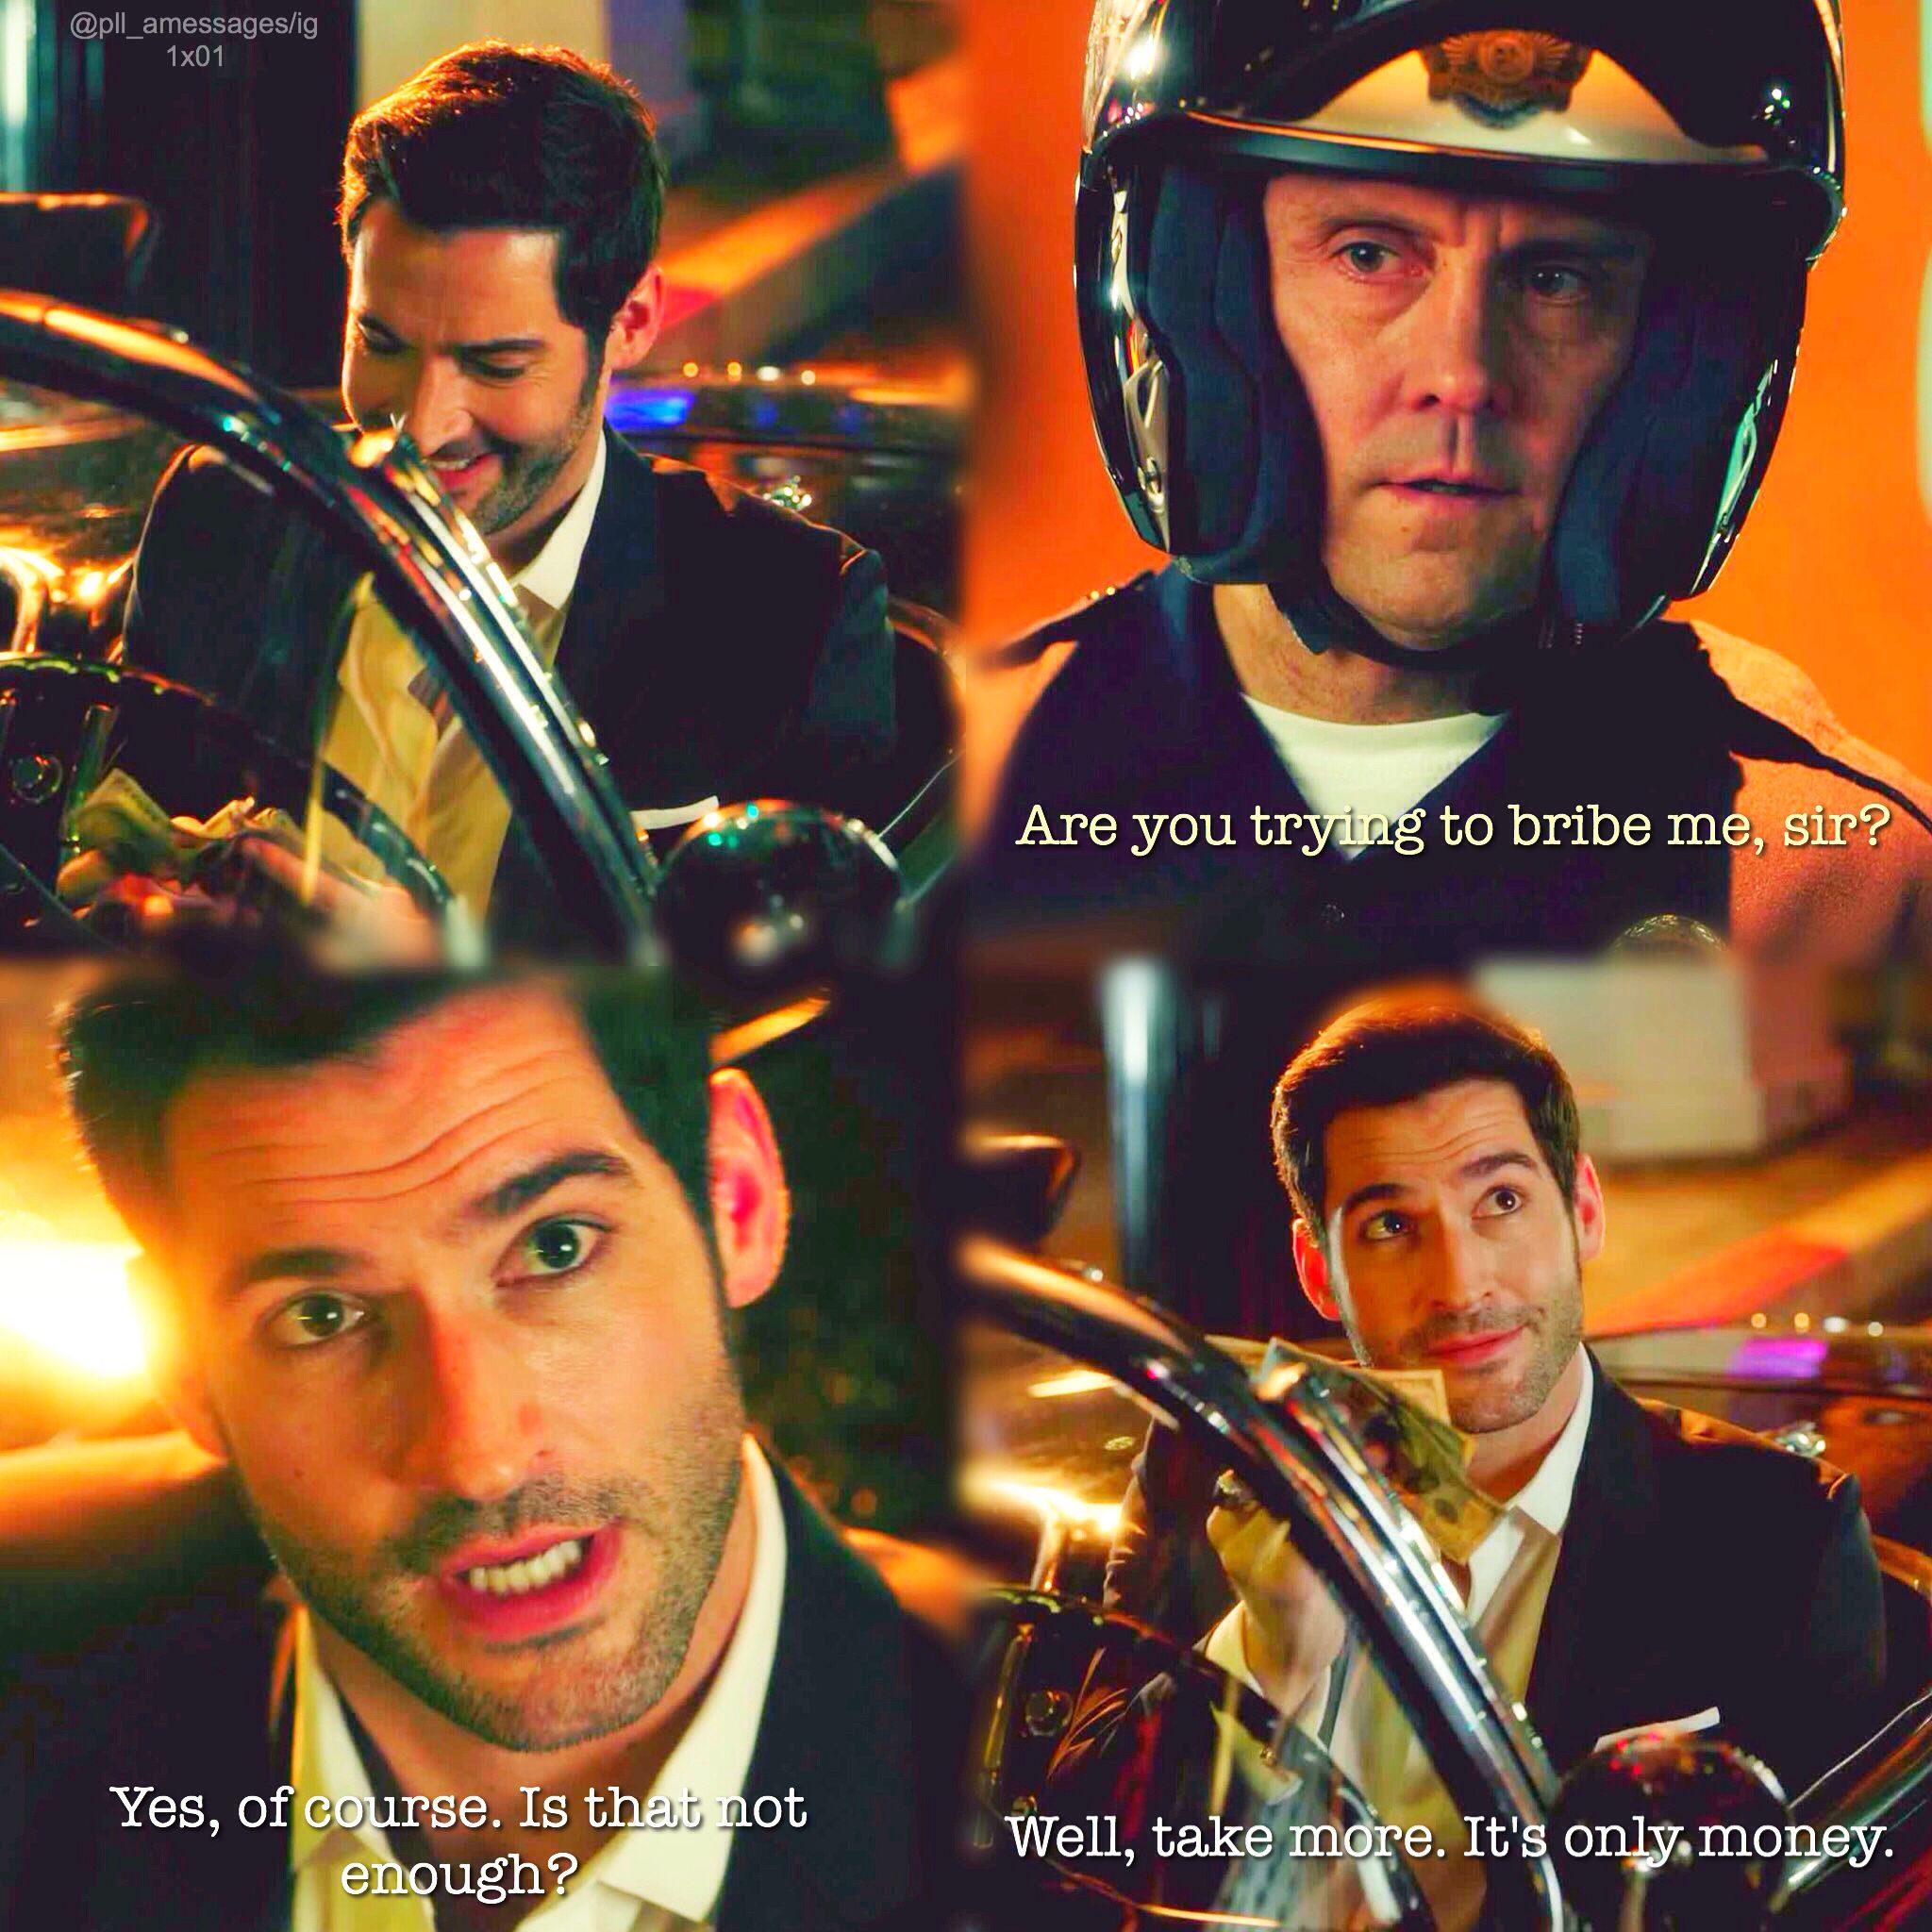 Lol. Lucifer Getting Pulled Over XD